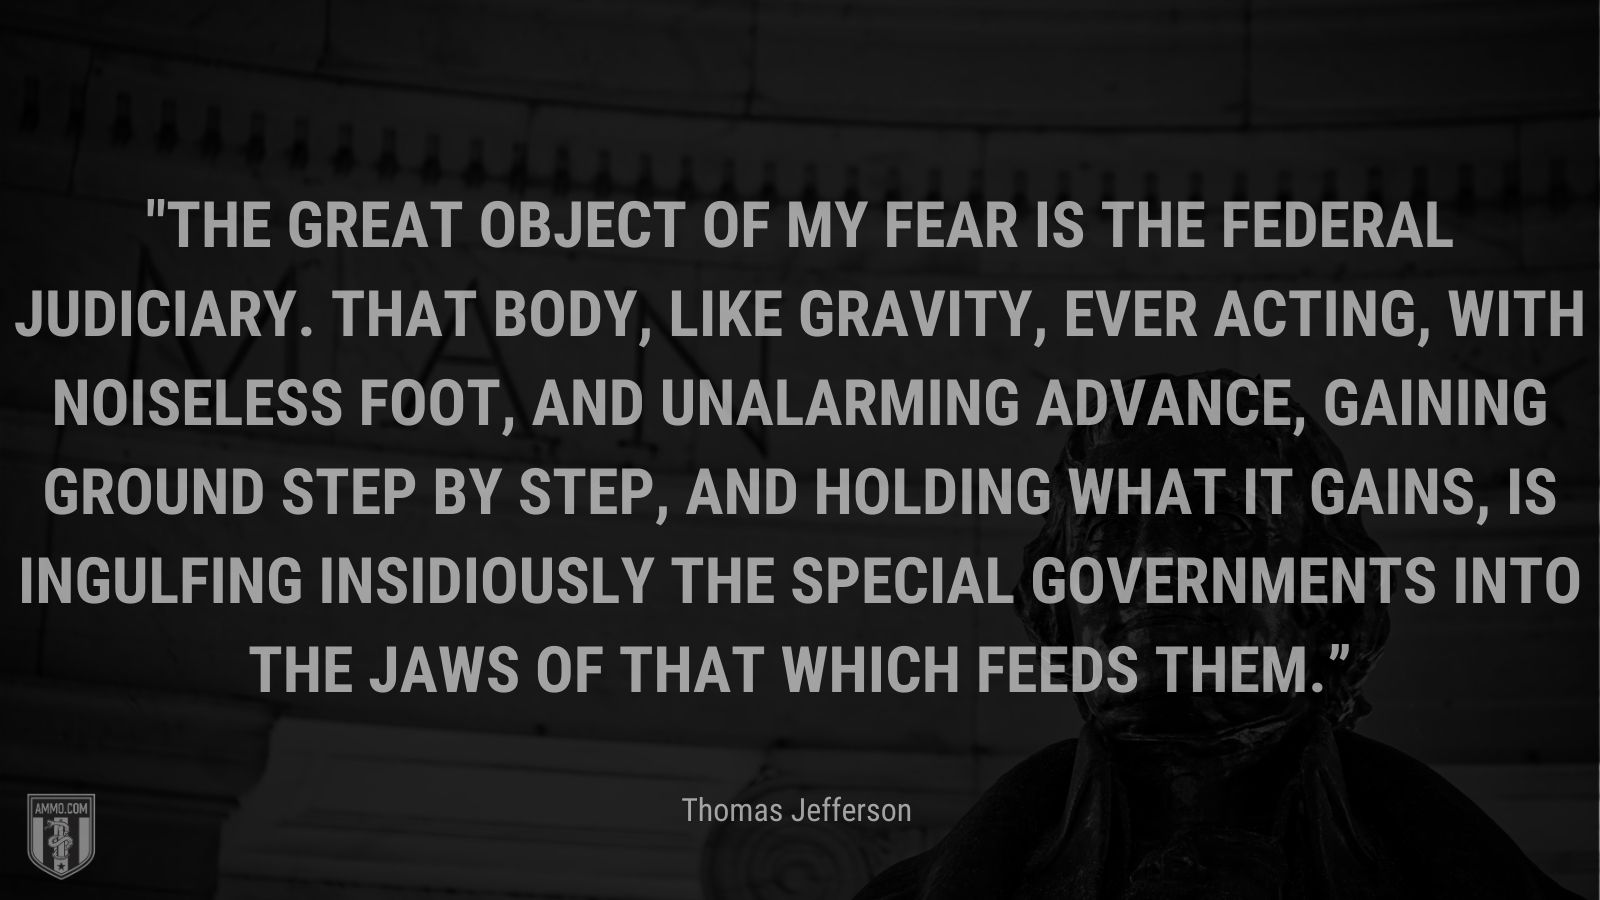 """""""The great object of my fear is the federal judiciary. That body, like gravity, ever acting, with noiseless foot, and unalarming advance, gaining ground step by step, and holding what it gains, is ingulfing insidiously the special governments into the jaws of that which feeds them."""" - Thomas Jefferson"""